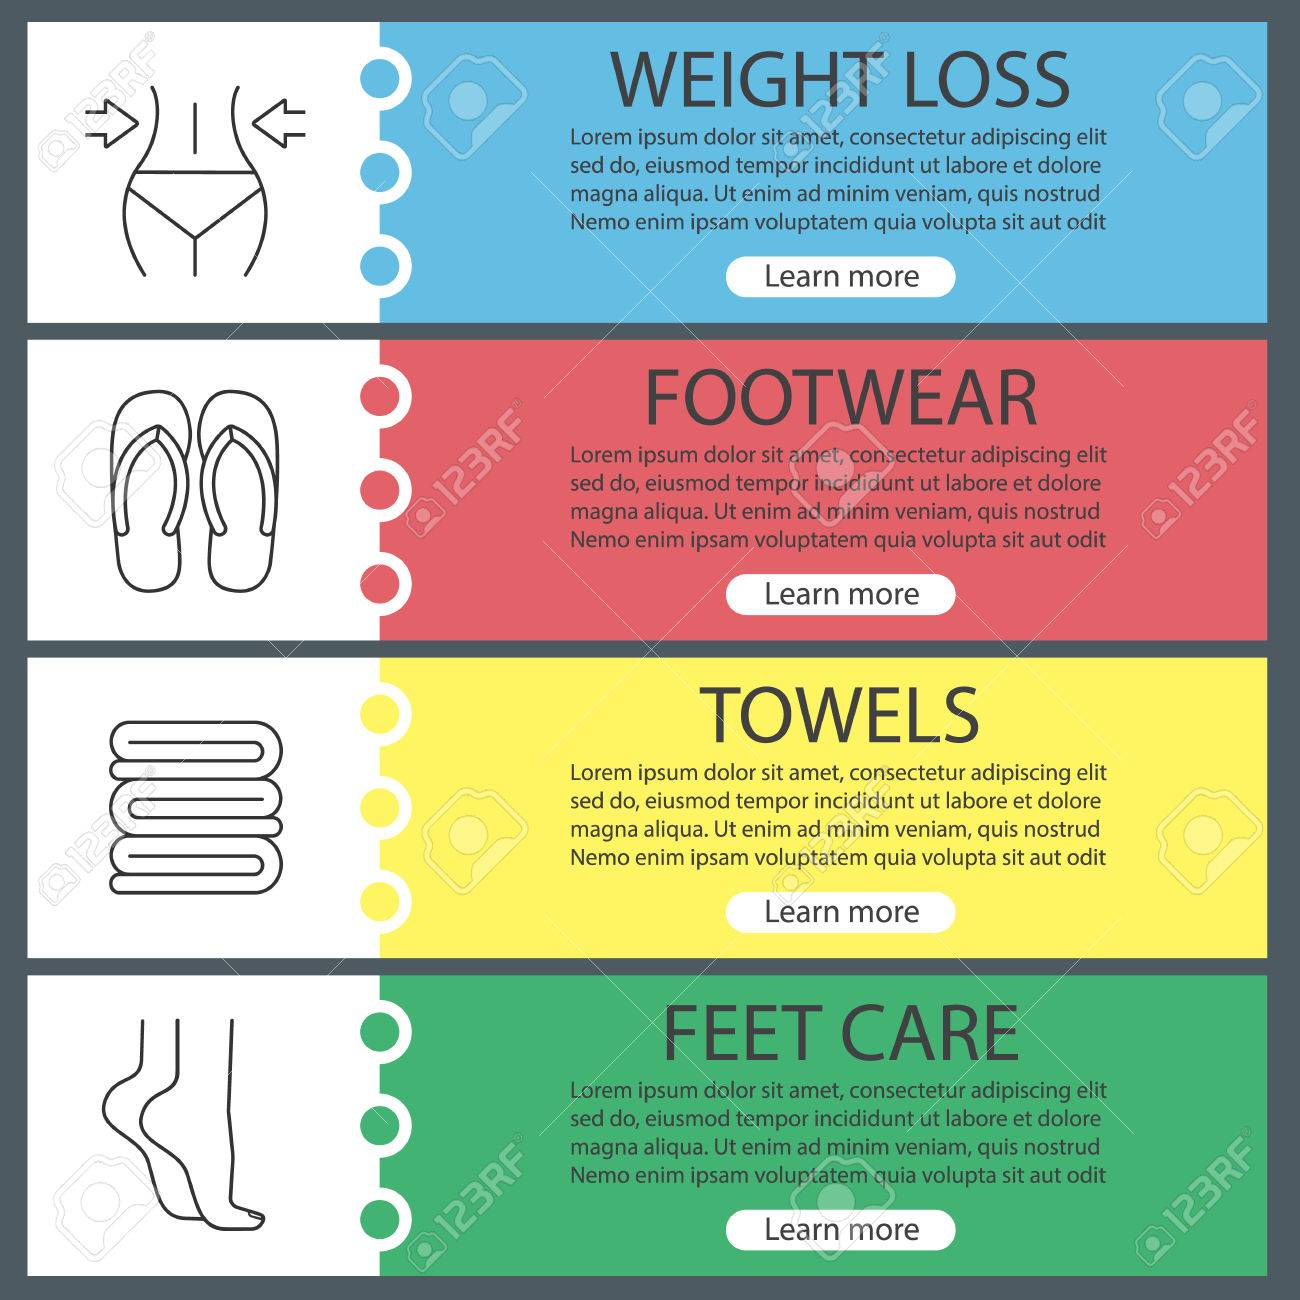 Great Sample Spa Menu Template Images U003eu003e Customizable Design 84575522 Spa  Salon Web Banner Templates Set Woman S Waist And Feet Towels Flip Flops  Website ...